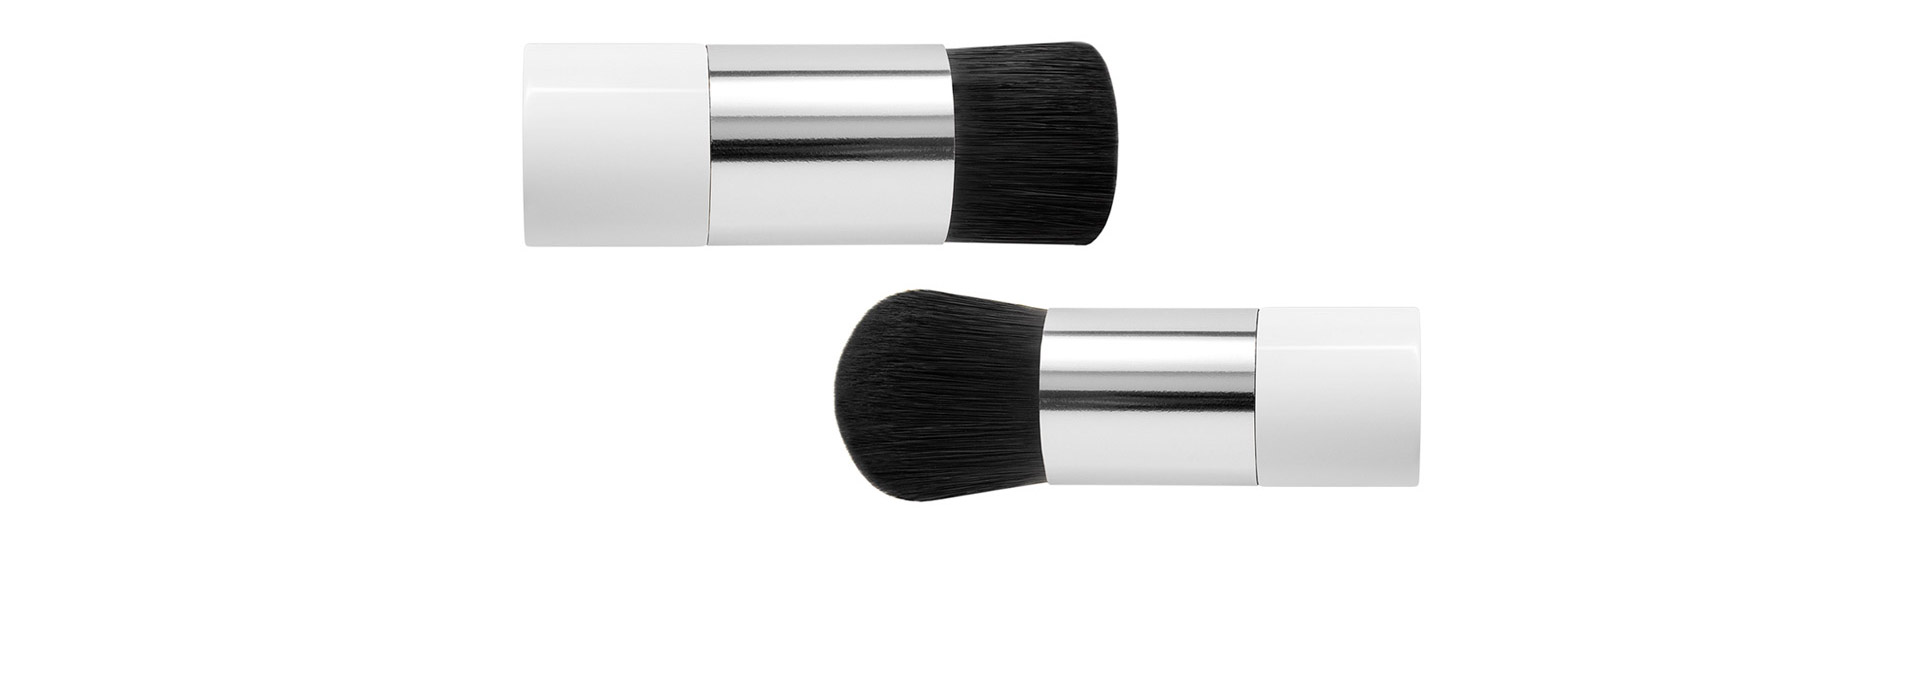 lines of custom brushes for cosmetics